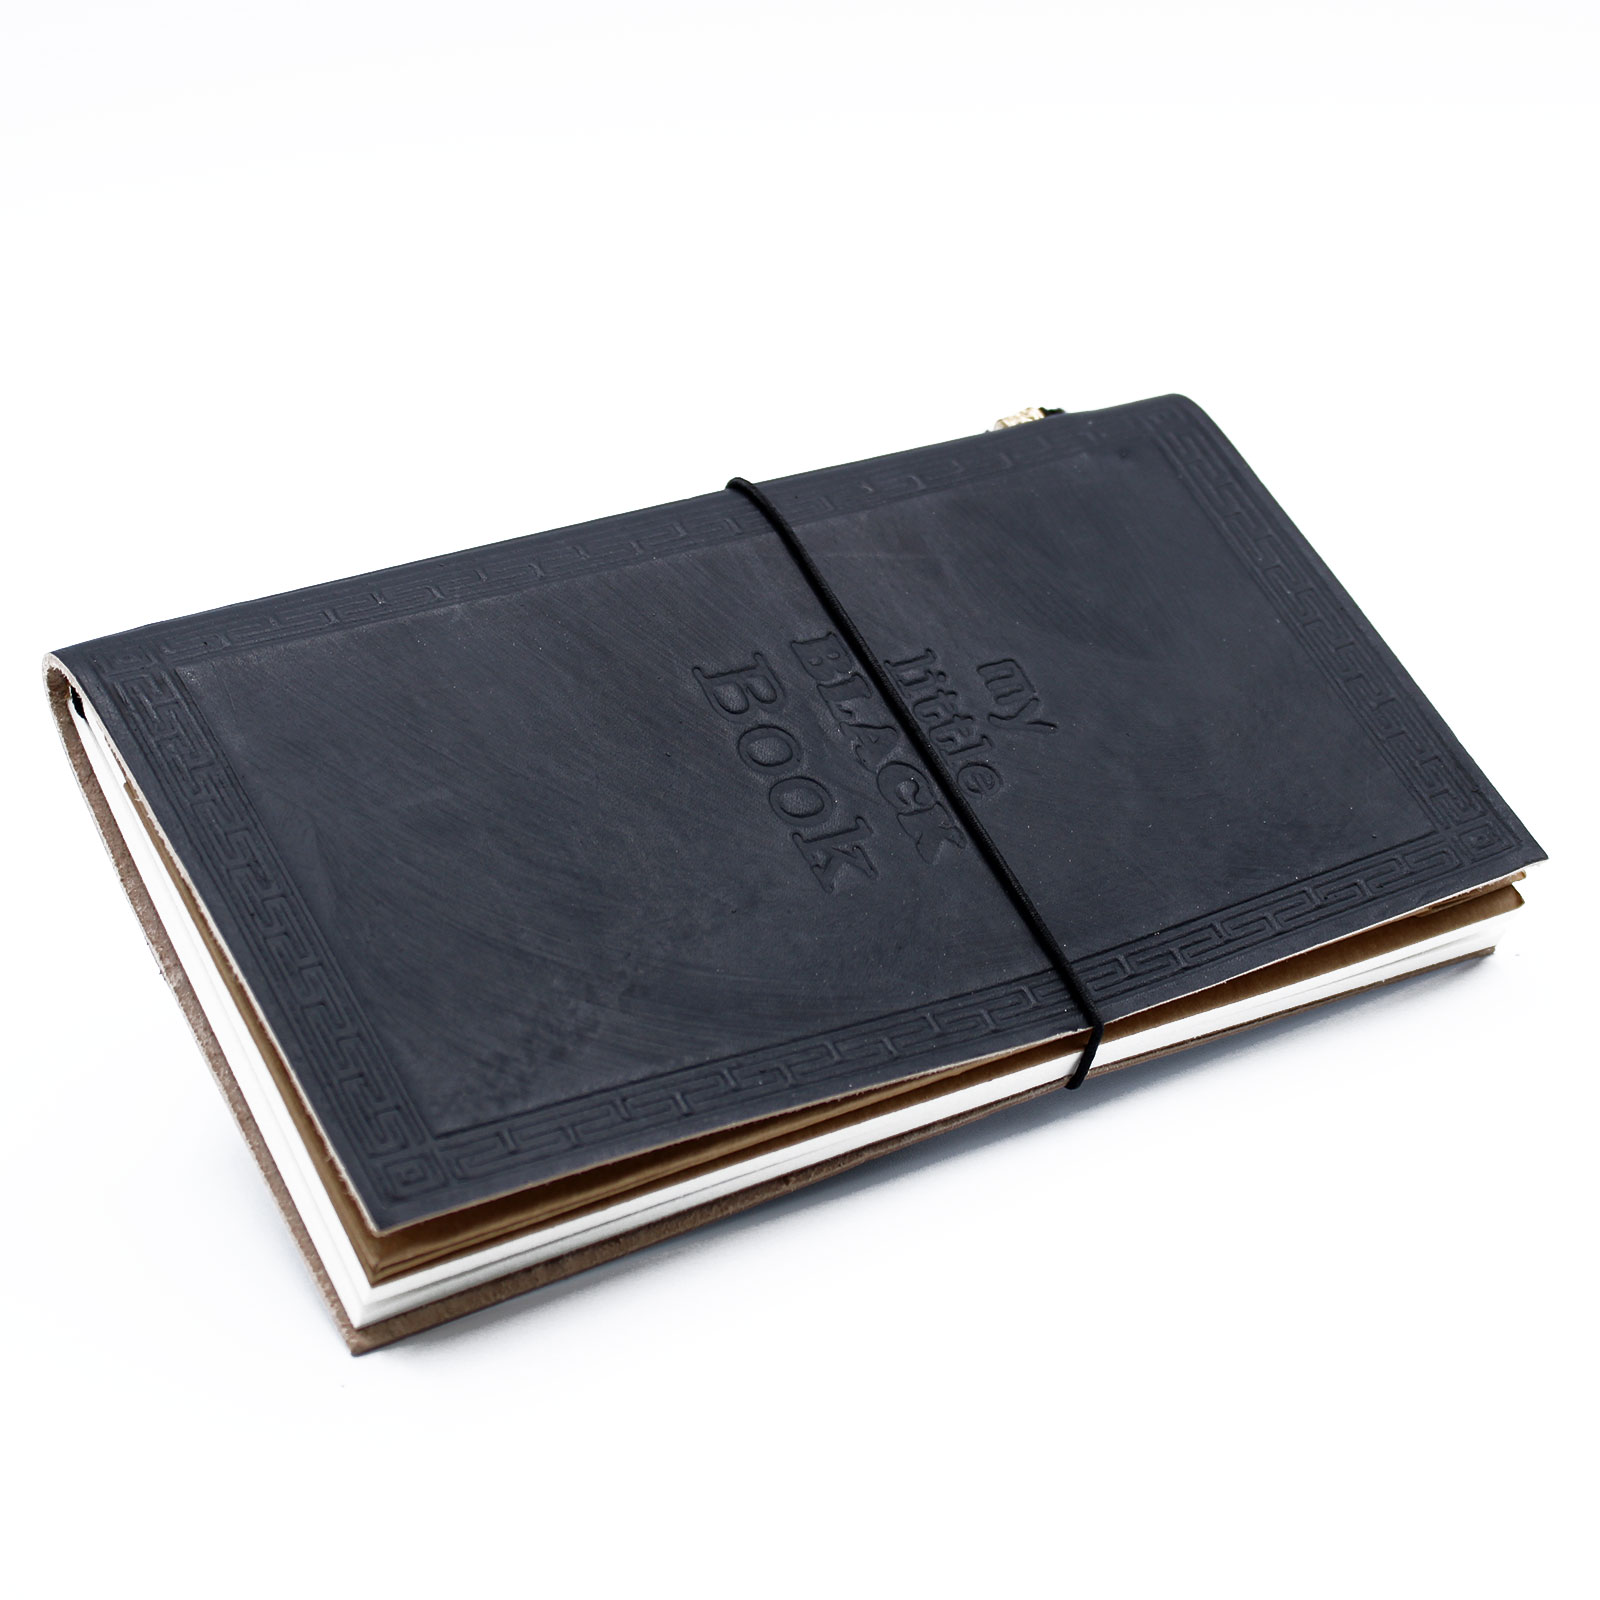 Handmade Leather Journal My Little Black Book Black 80 pages